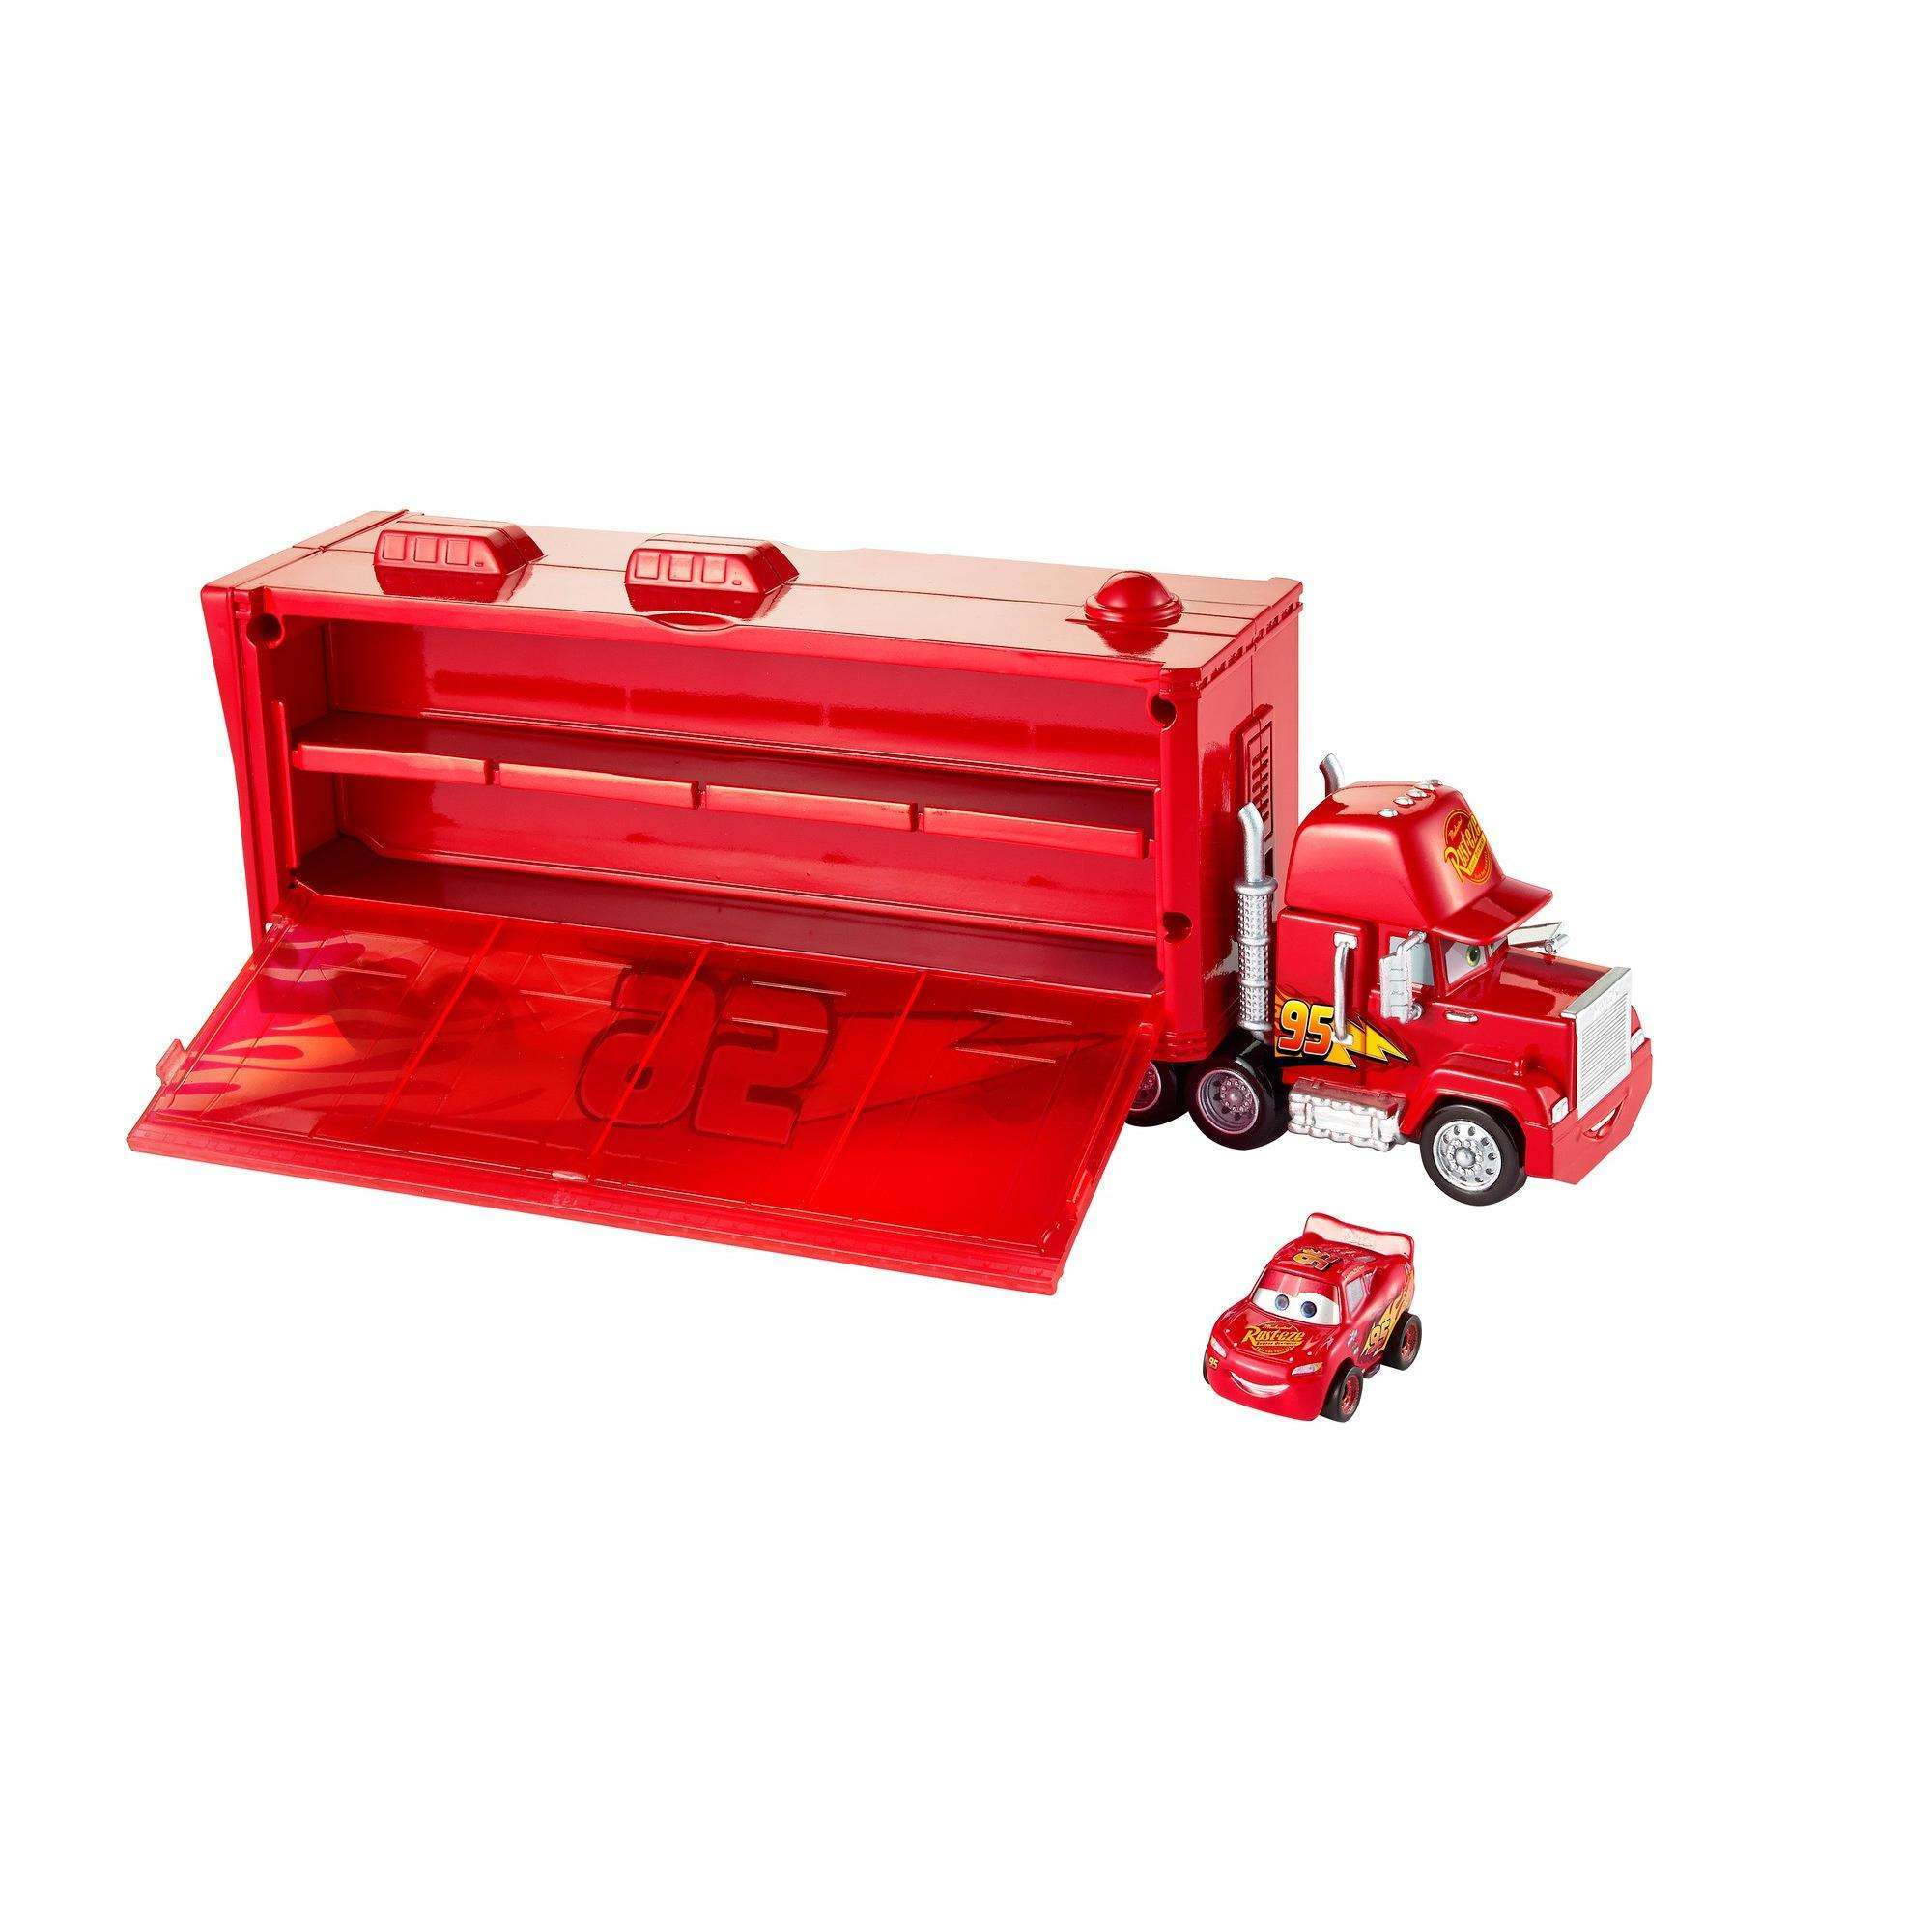 Disney Pixar Cars Metal Mini Racers Mack Truck Transporter by Mattel